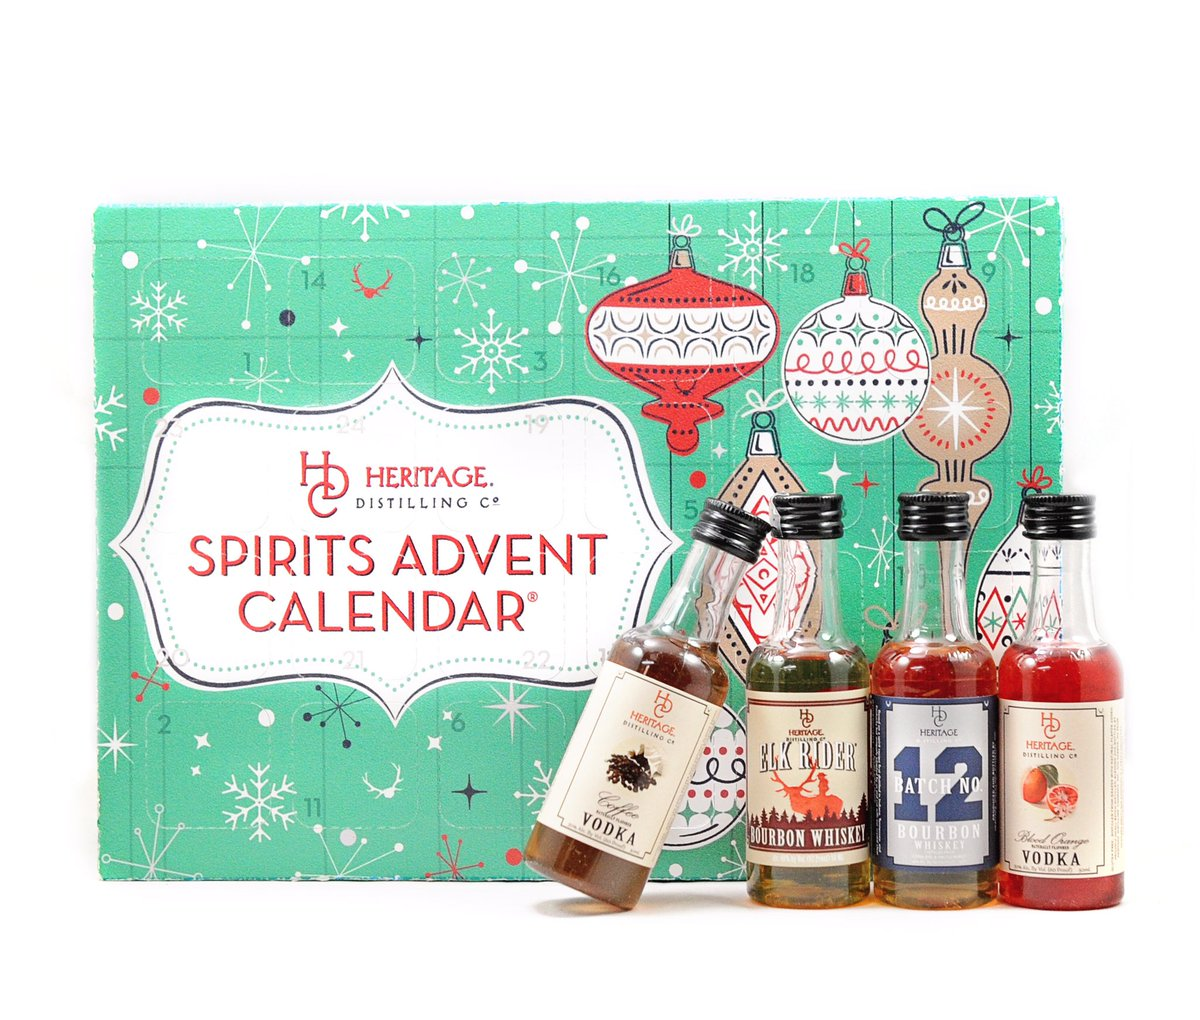 test Twitter Media - The only #SpiritsAdventCalendar featuring all craft spirits made in the U.S. is now available for order online. #HeritageDistilling https://t.co/vx7KWyVA06